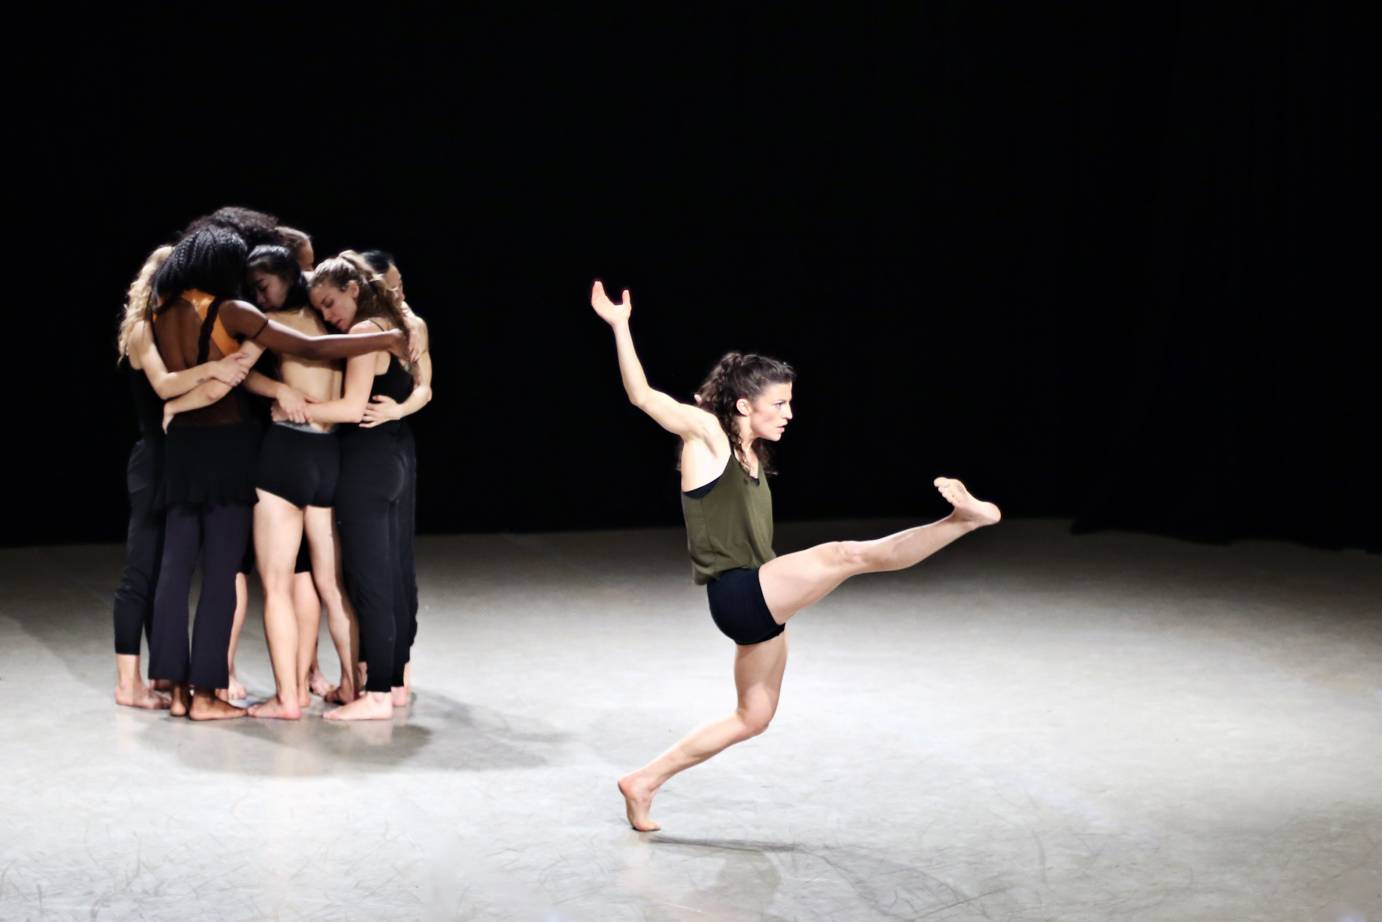 One solo dancer kicks while a group of women hug in the background